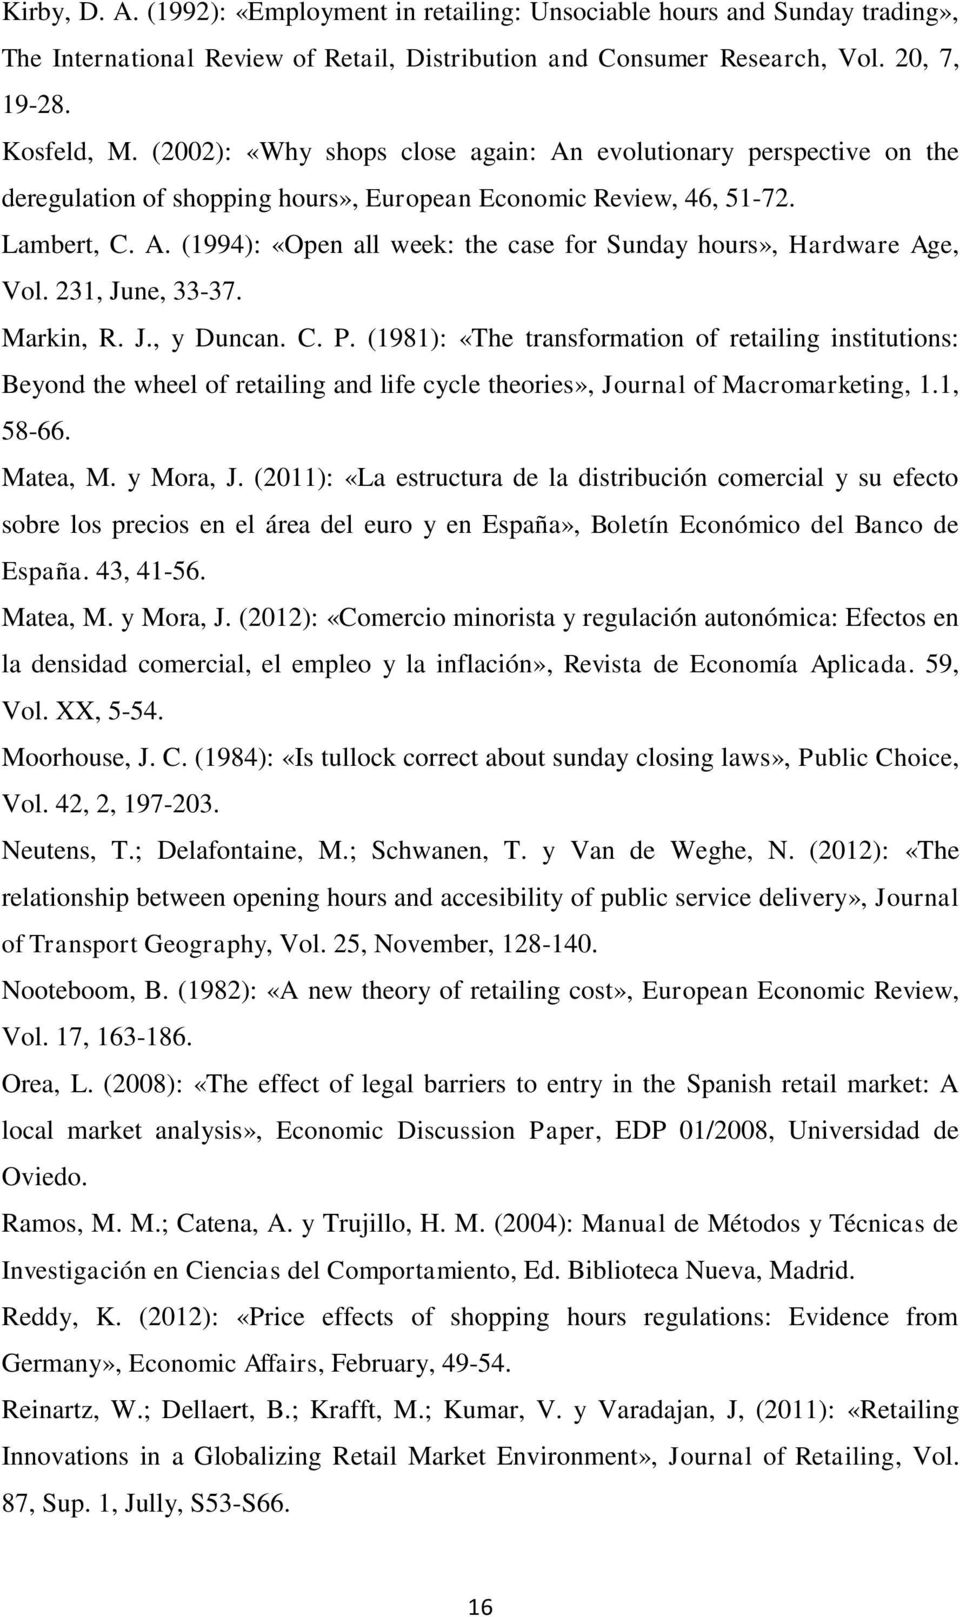 23, June, 33-37. Markin, R. J., y Duncan. C. P. (98): «The transformation of retailing institutions: Beyond the wheel of retailing and life cycle theories», Journal of Macromarketing,., 58-66.